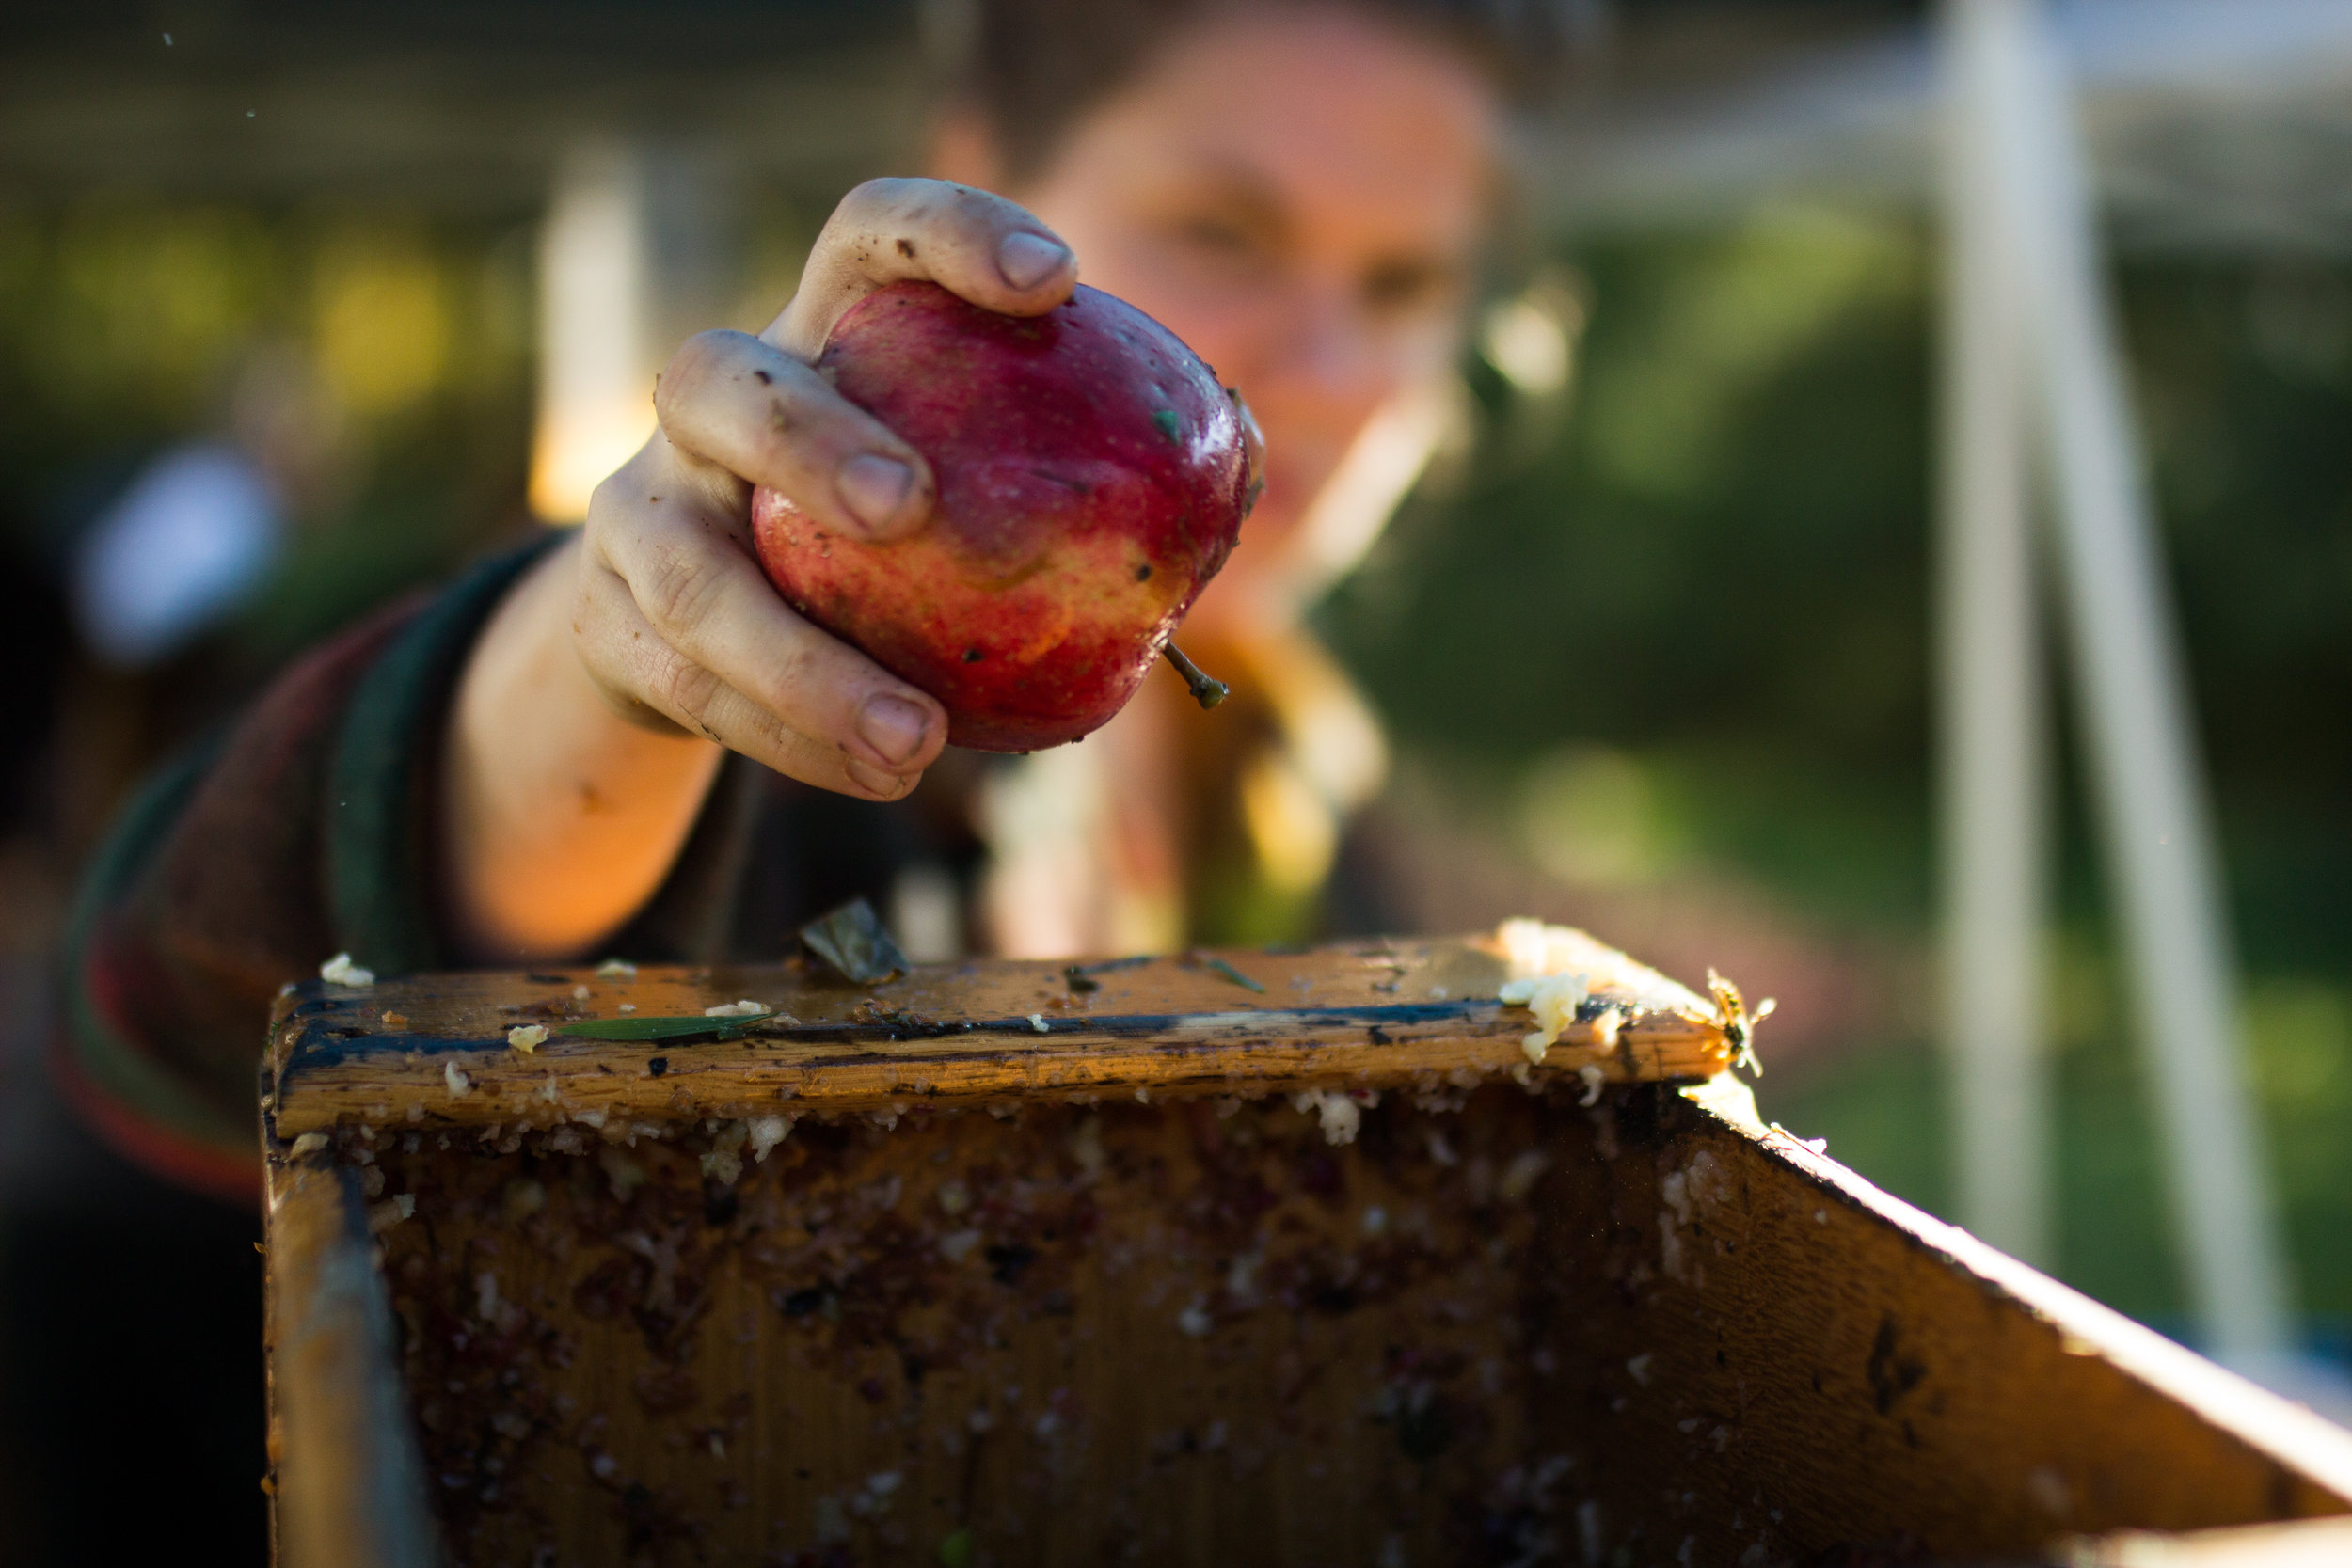 With a $10,000 grant from the WA Coast Works Alliance, Two Hooligans Cider can expand their sustainable cider operation with new equipment and a machine that washes bottles recycled for reuse. Photo by Havilah Gautschi.